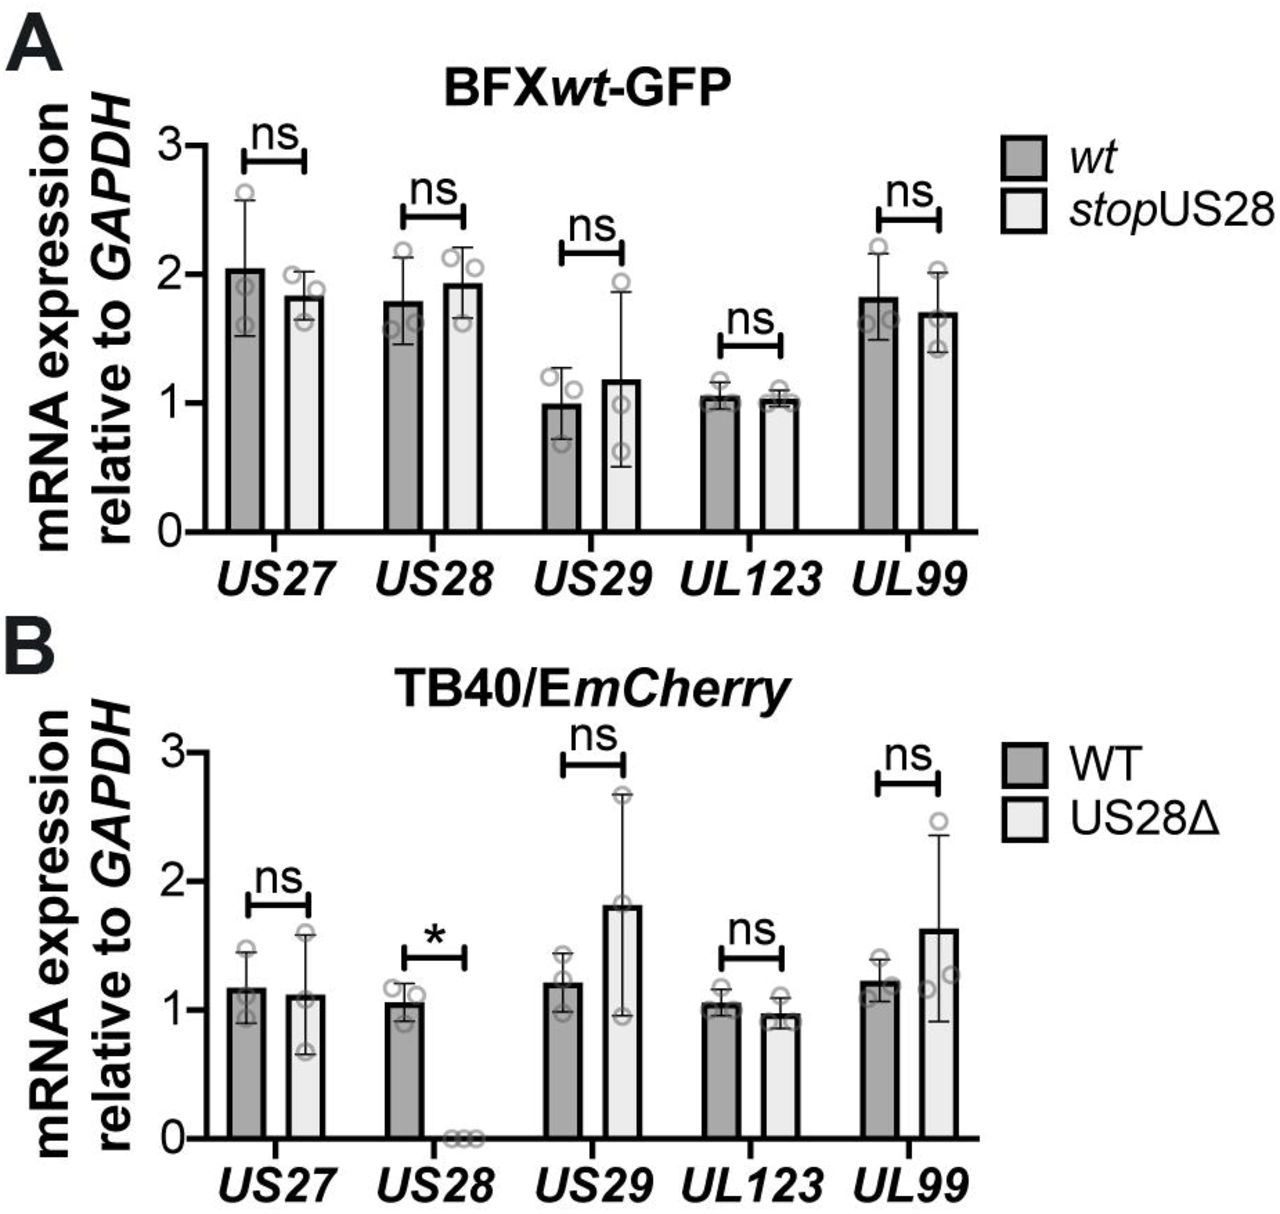 Abrogating pUS28 expression does not impact US27 or US29 transcription. NuFF-1 fibroblasts were infected (moi = 0.5) with (A) BFX wt -based or (B) TB40/E mCherry -based viruses. Total RNA was harvested 96 hpi and US27 , US28 , US29 , UL123 , and UL99 mRNA levels were quantified by RTqPCR. Viral gene expression is plotted relative to cellular GAPDH . Each data point (circles) is the mean of three technical replicates (e.g. one biological replicate). Error bars indicate standard deviation of three biological replicates, and statistical significance was calculated using two-way ANOVA analyses followed by Tukey's post-hoc analyses. * p